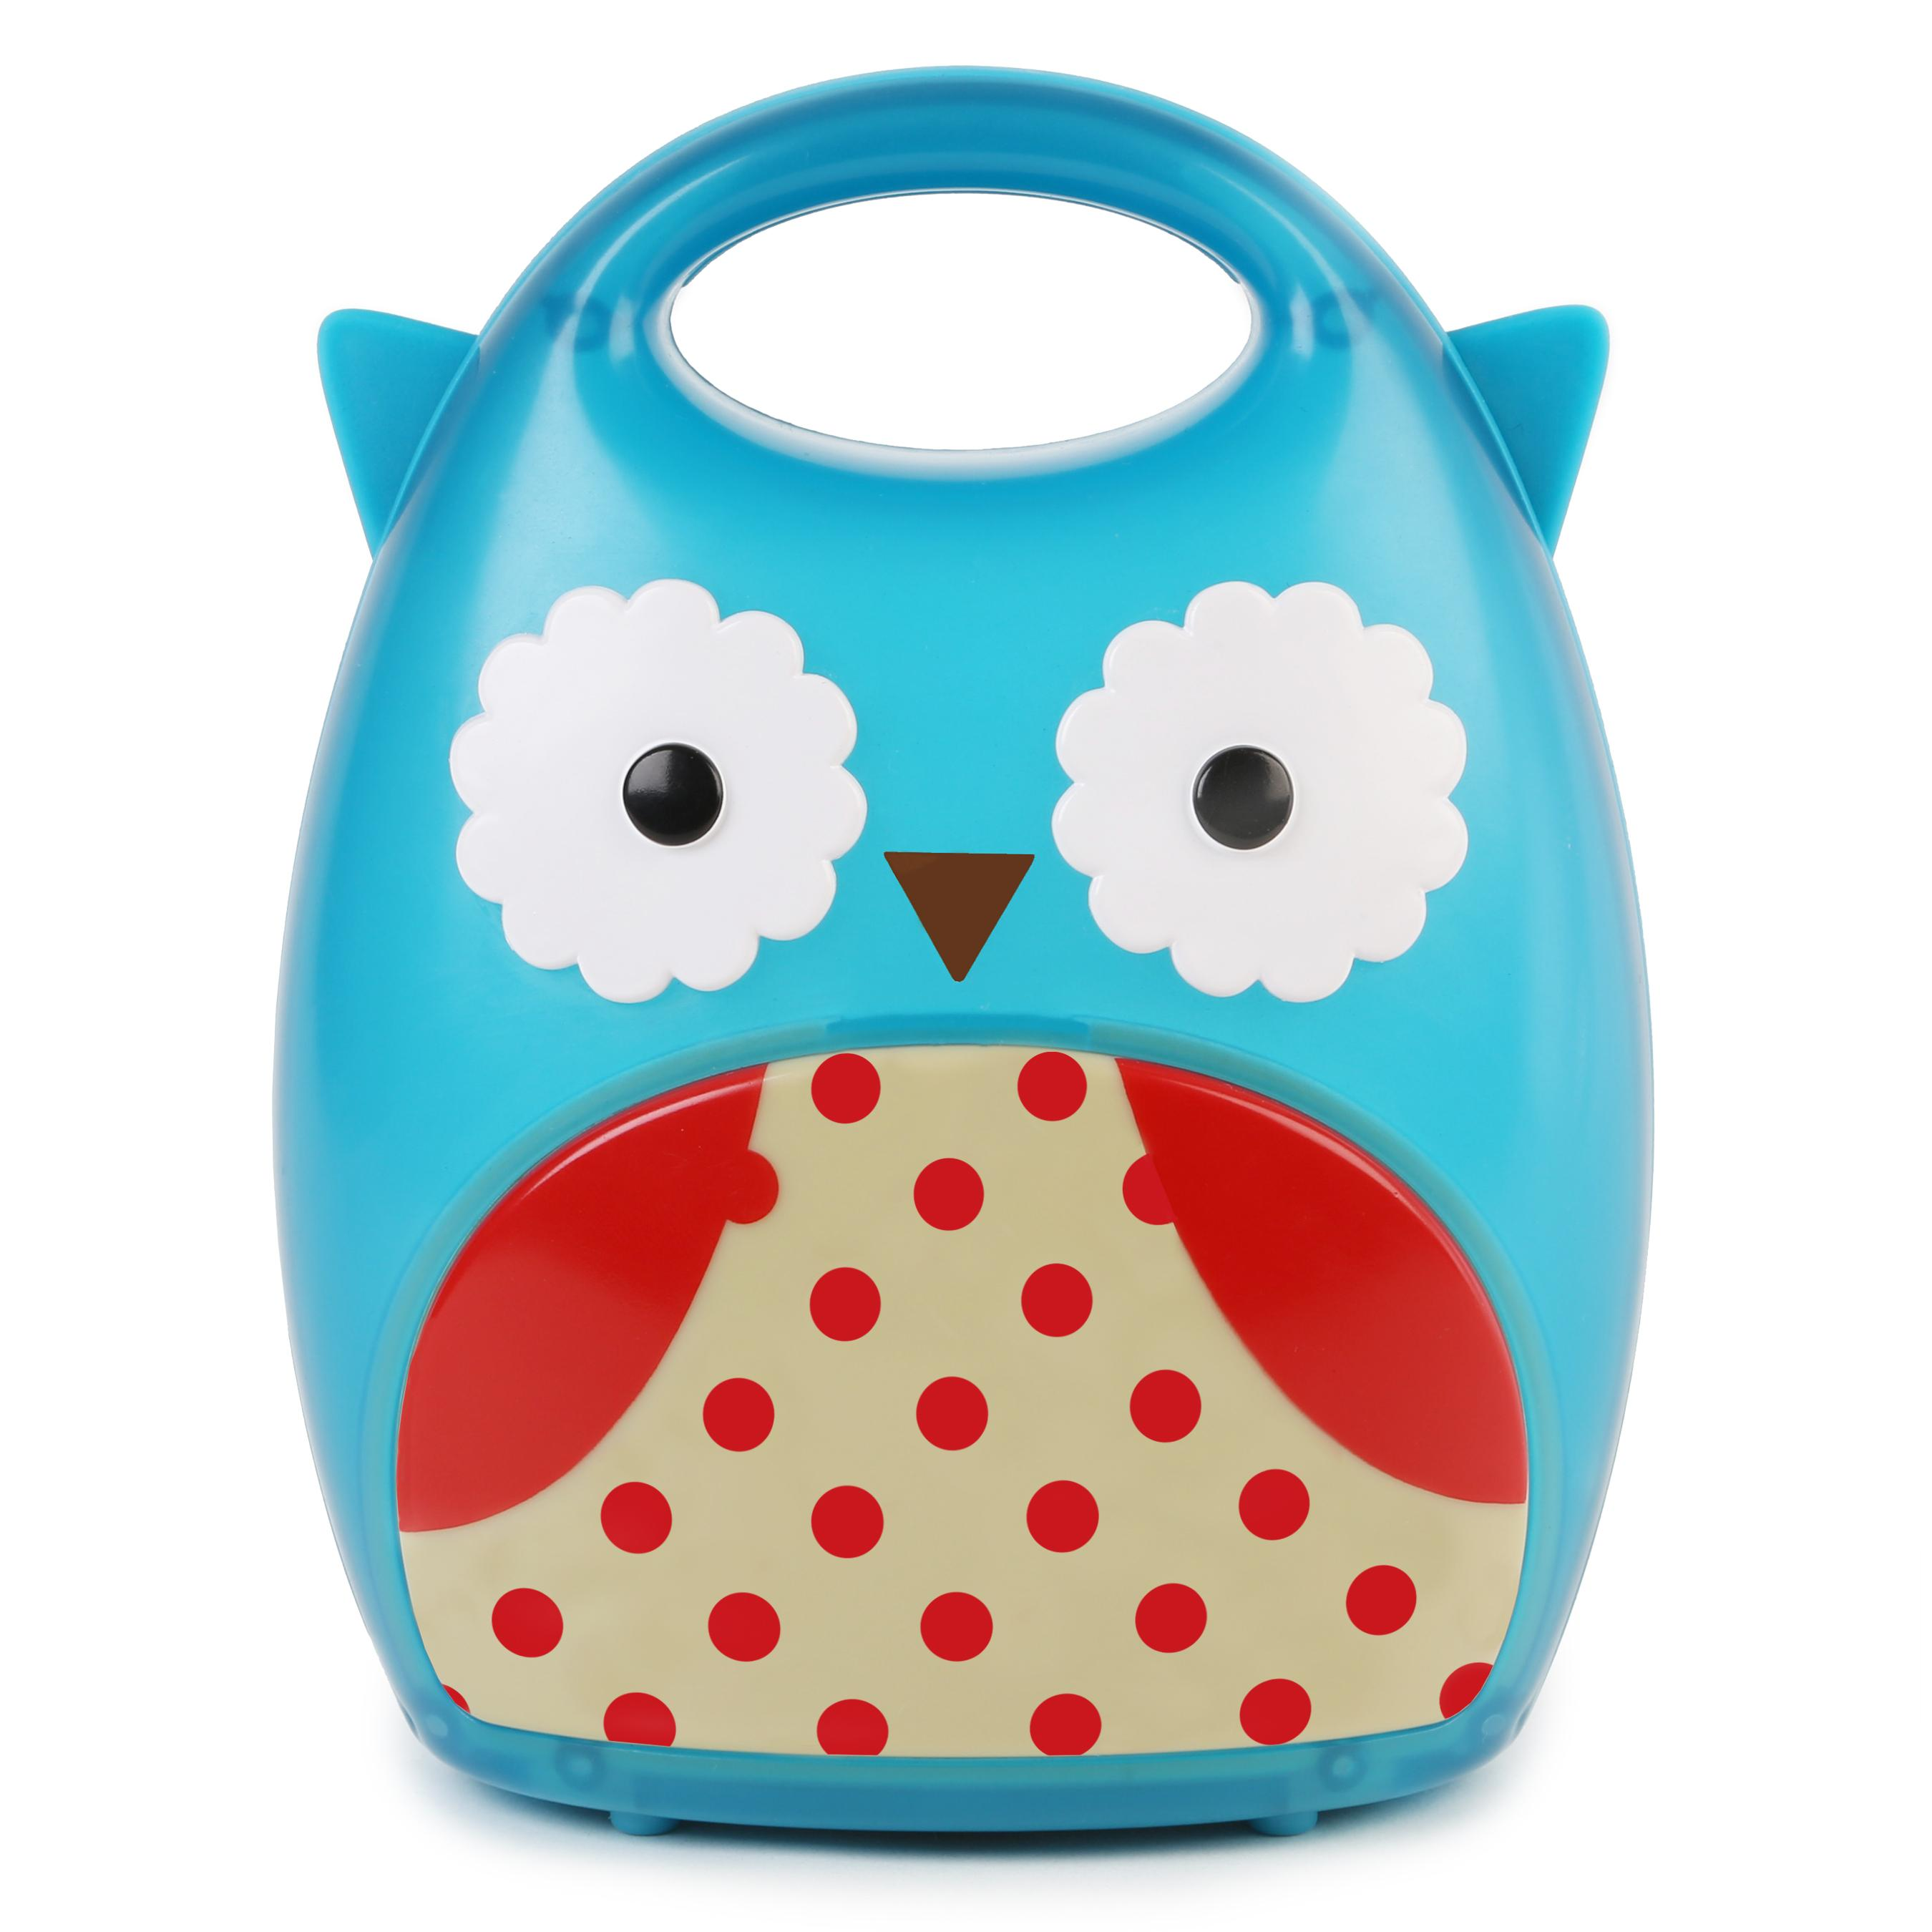 Search For Flights Coton Colors Happy Everything Large Cookie Jar Polka Dot Multi Attachments Owl Soft And Light Holiday & Seasonal